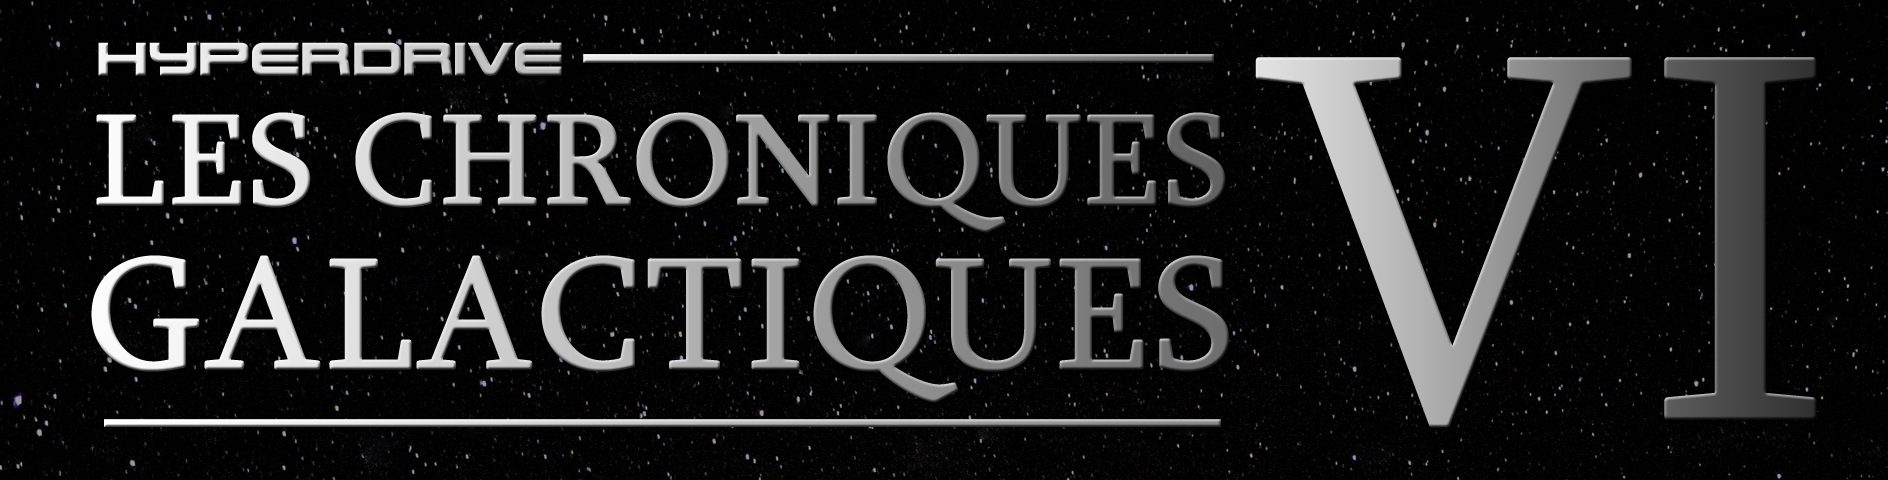 Chroniques galactiques 6 fiction audio Star Wars podcast